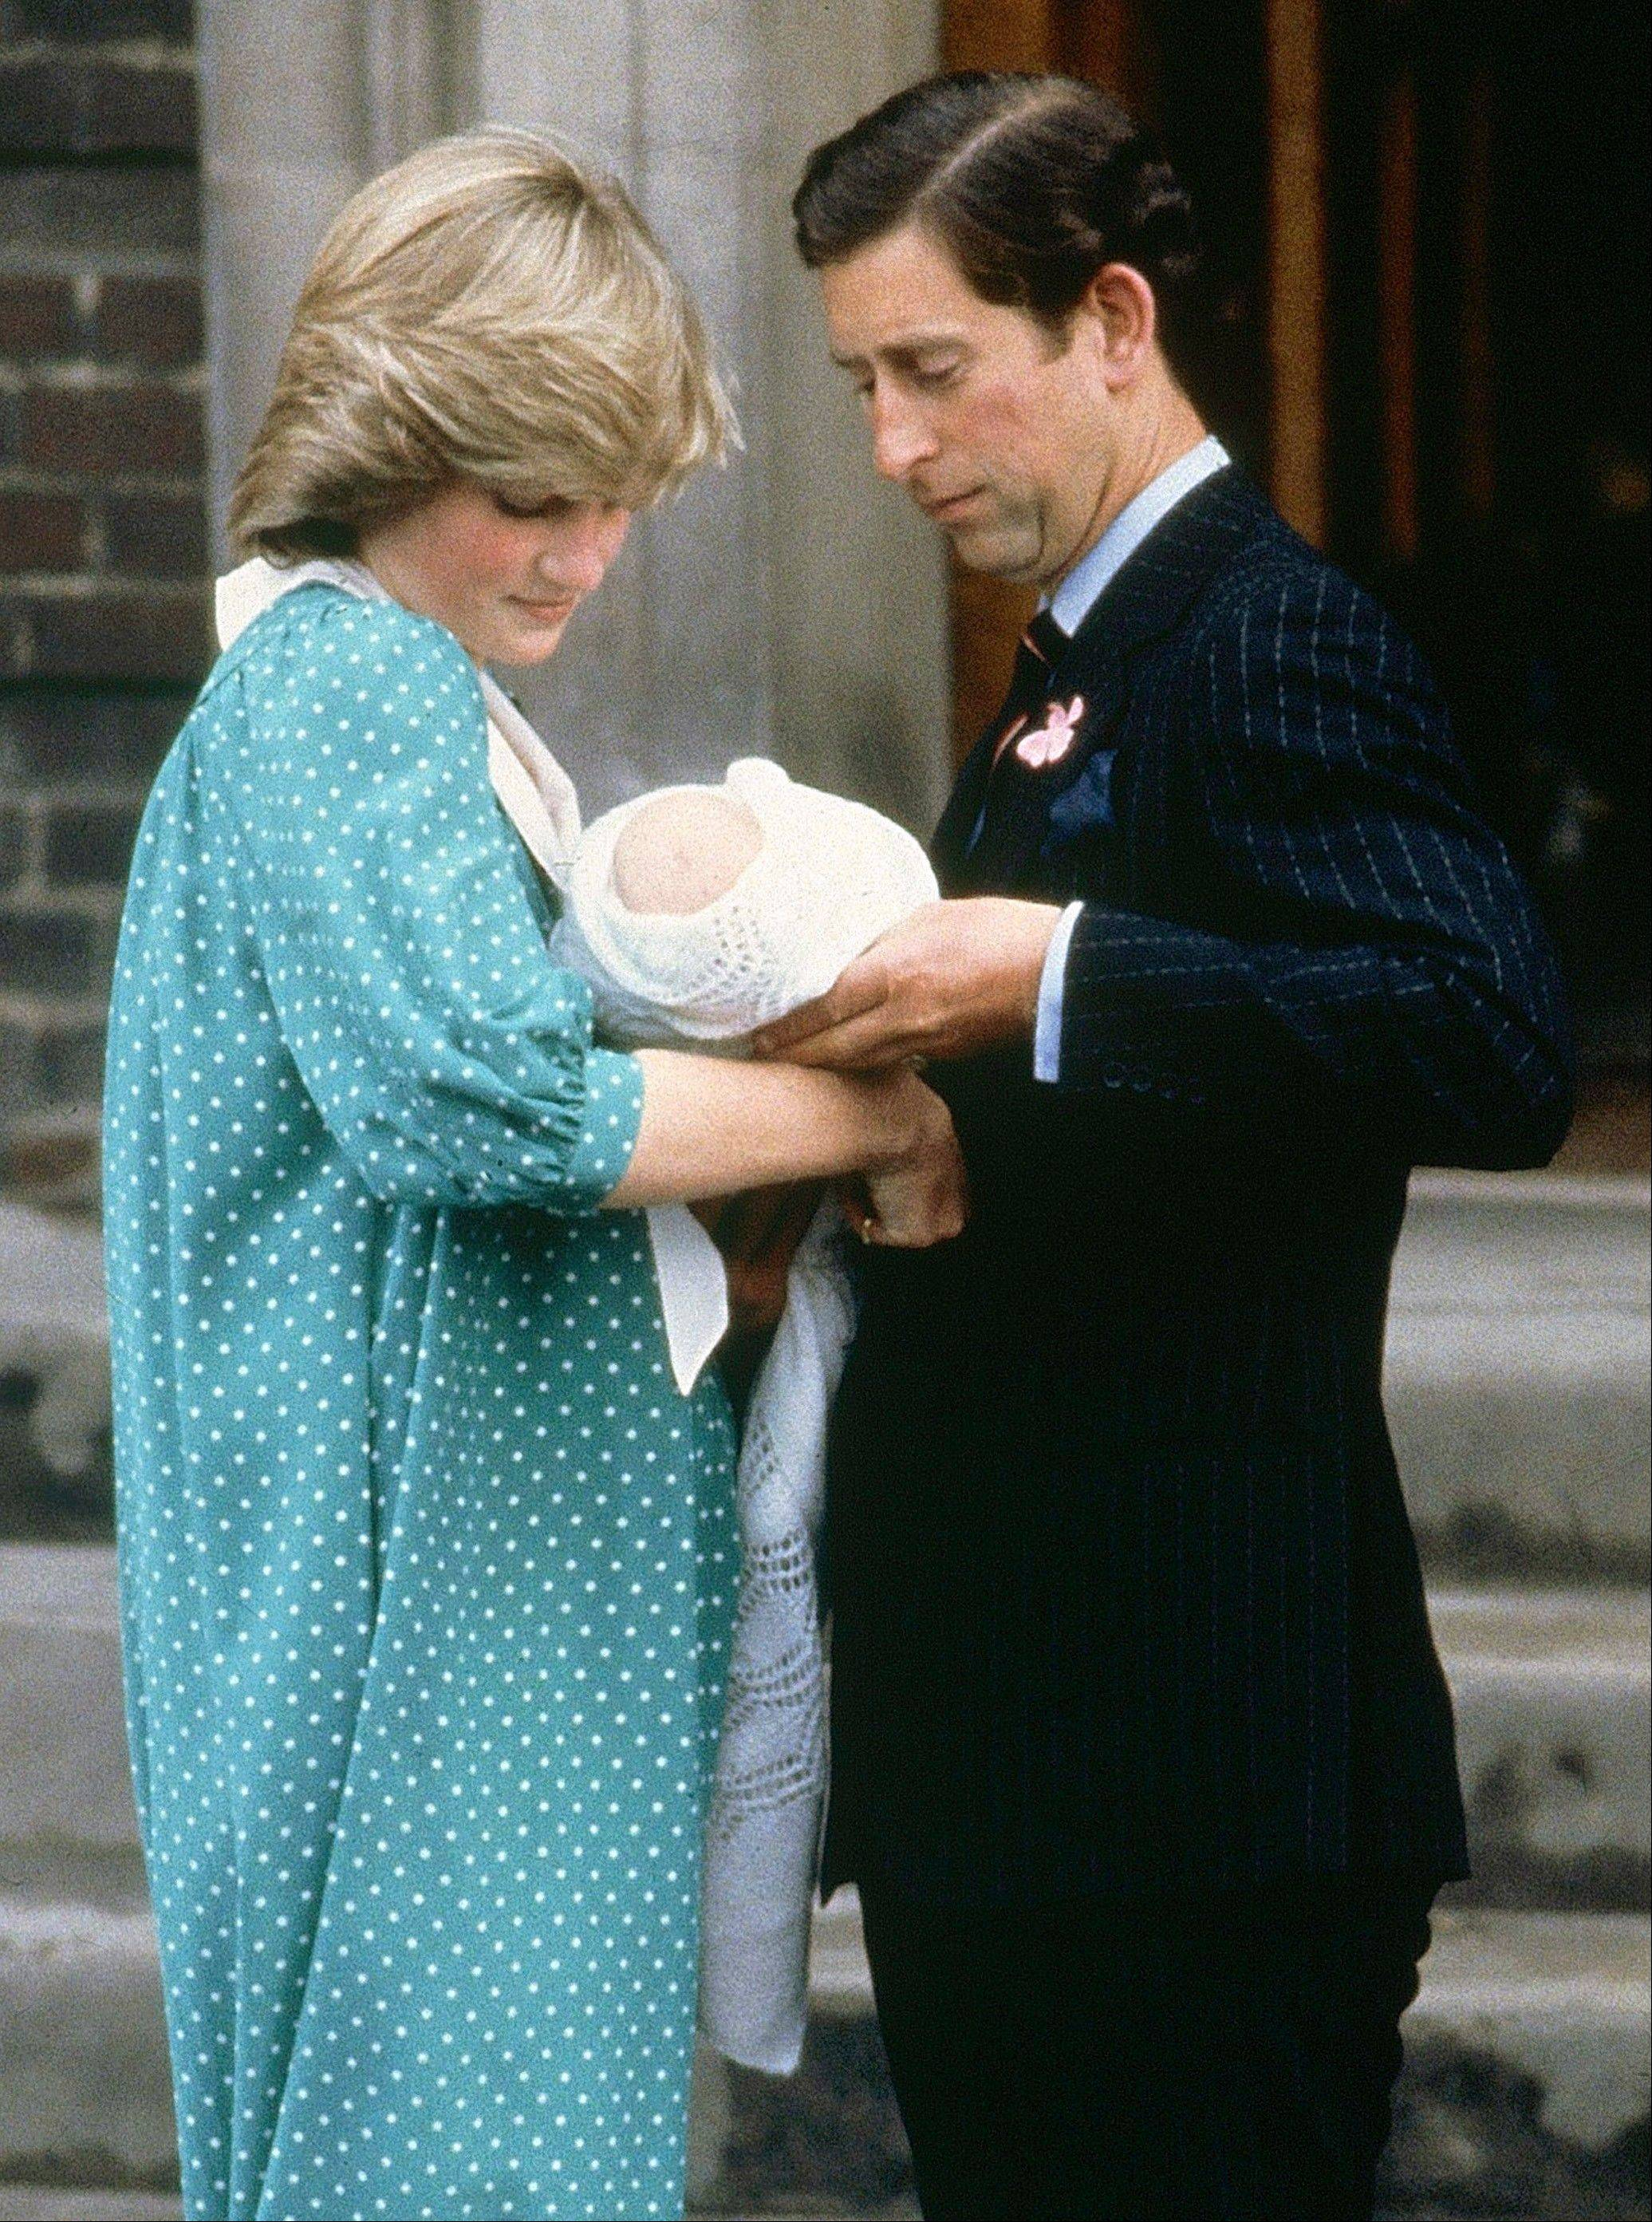 Princess Diana's caftan-like outfit hid the post-childbirth tummy bump that is normal for any new mom after she gave birth to Prince William in 1982.